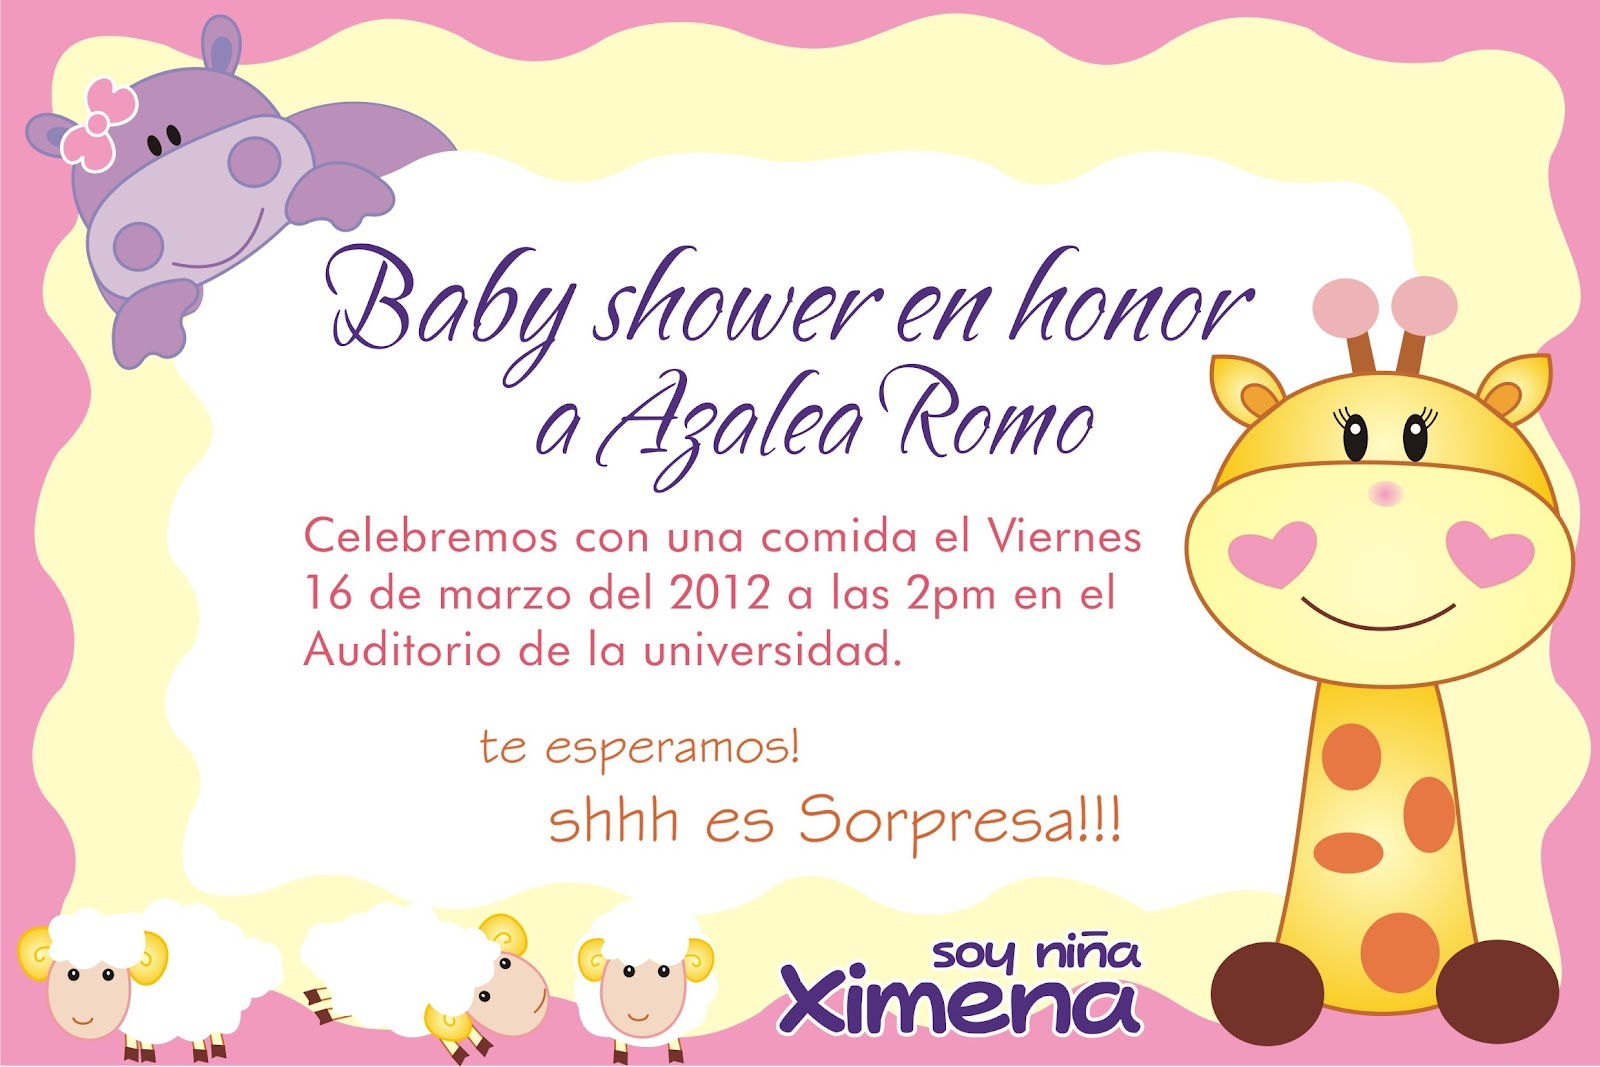 frases para invitaciones de baby shower originales auto design tech